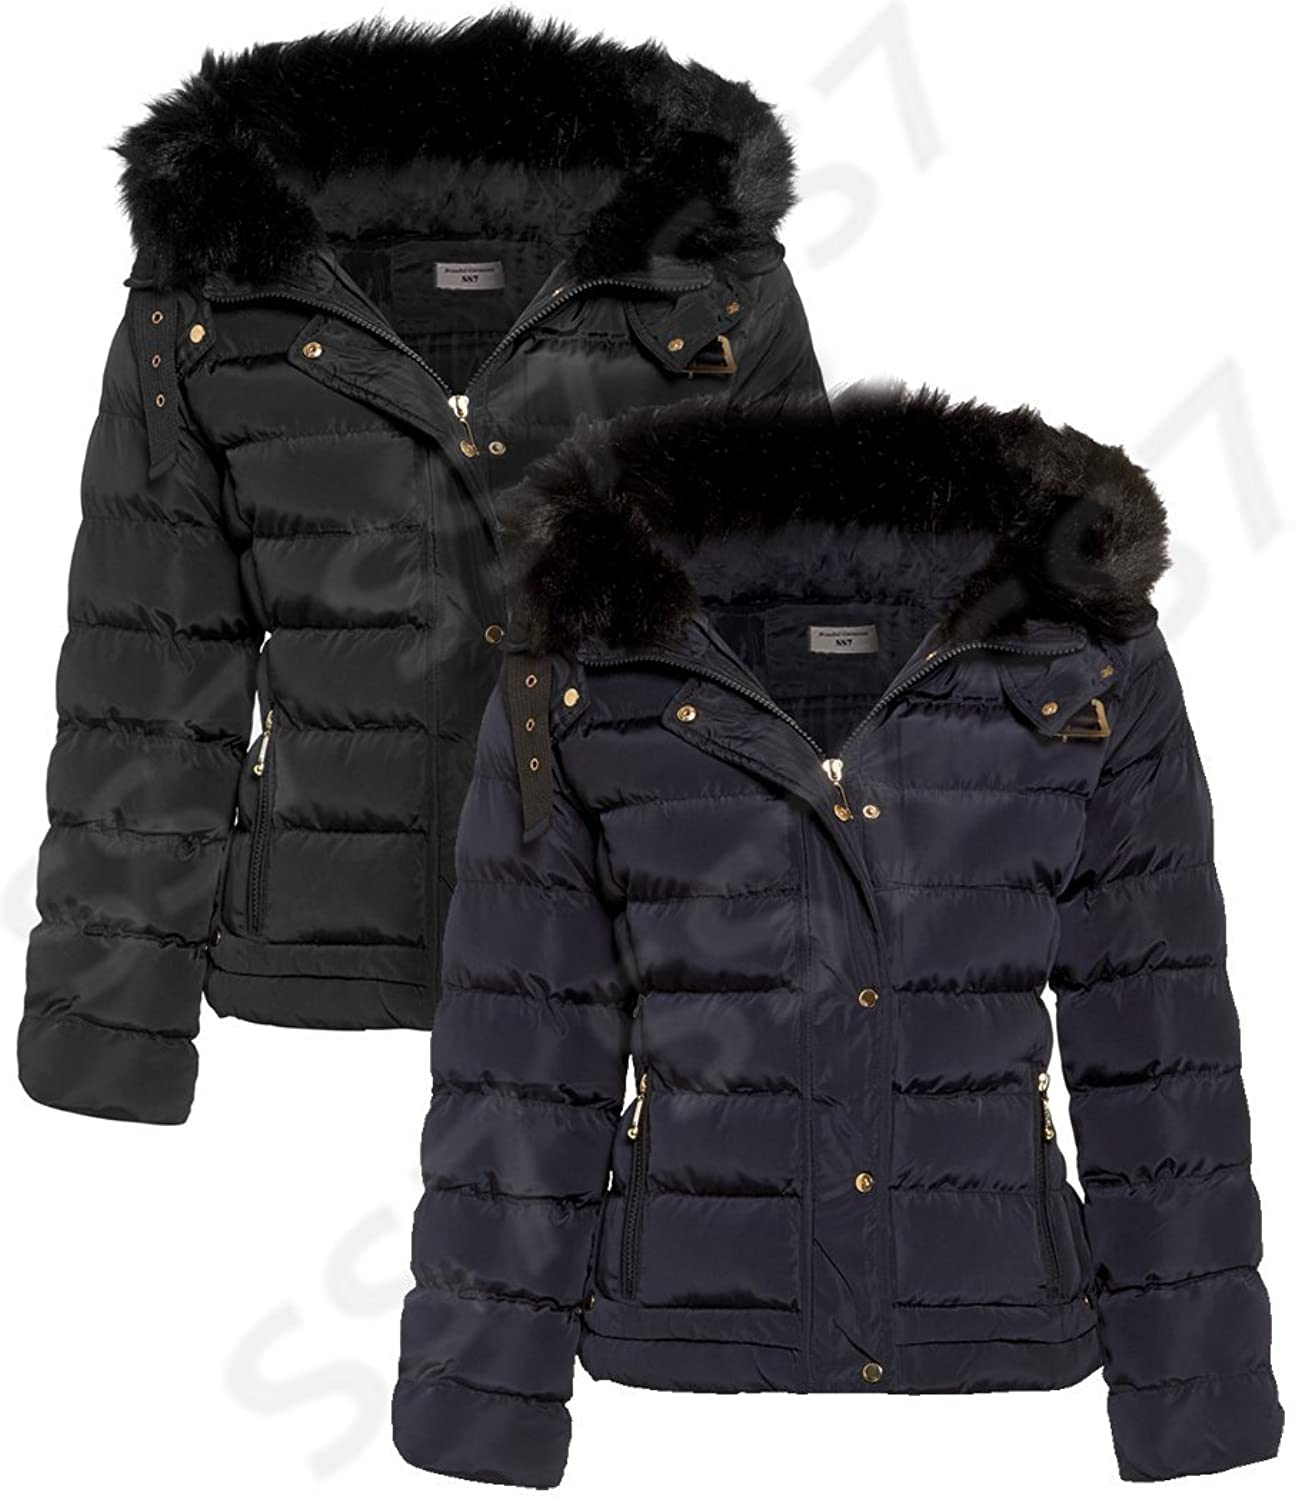 SS7 Women's Padded Winter Jacket, Sizes 8 to 16: Amazon.co.uk ...